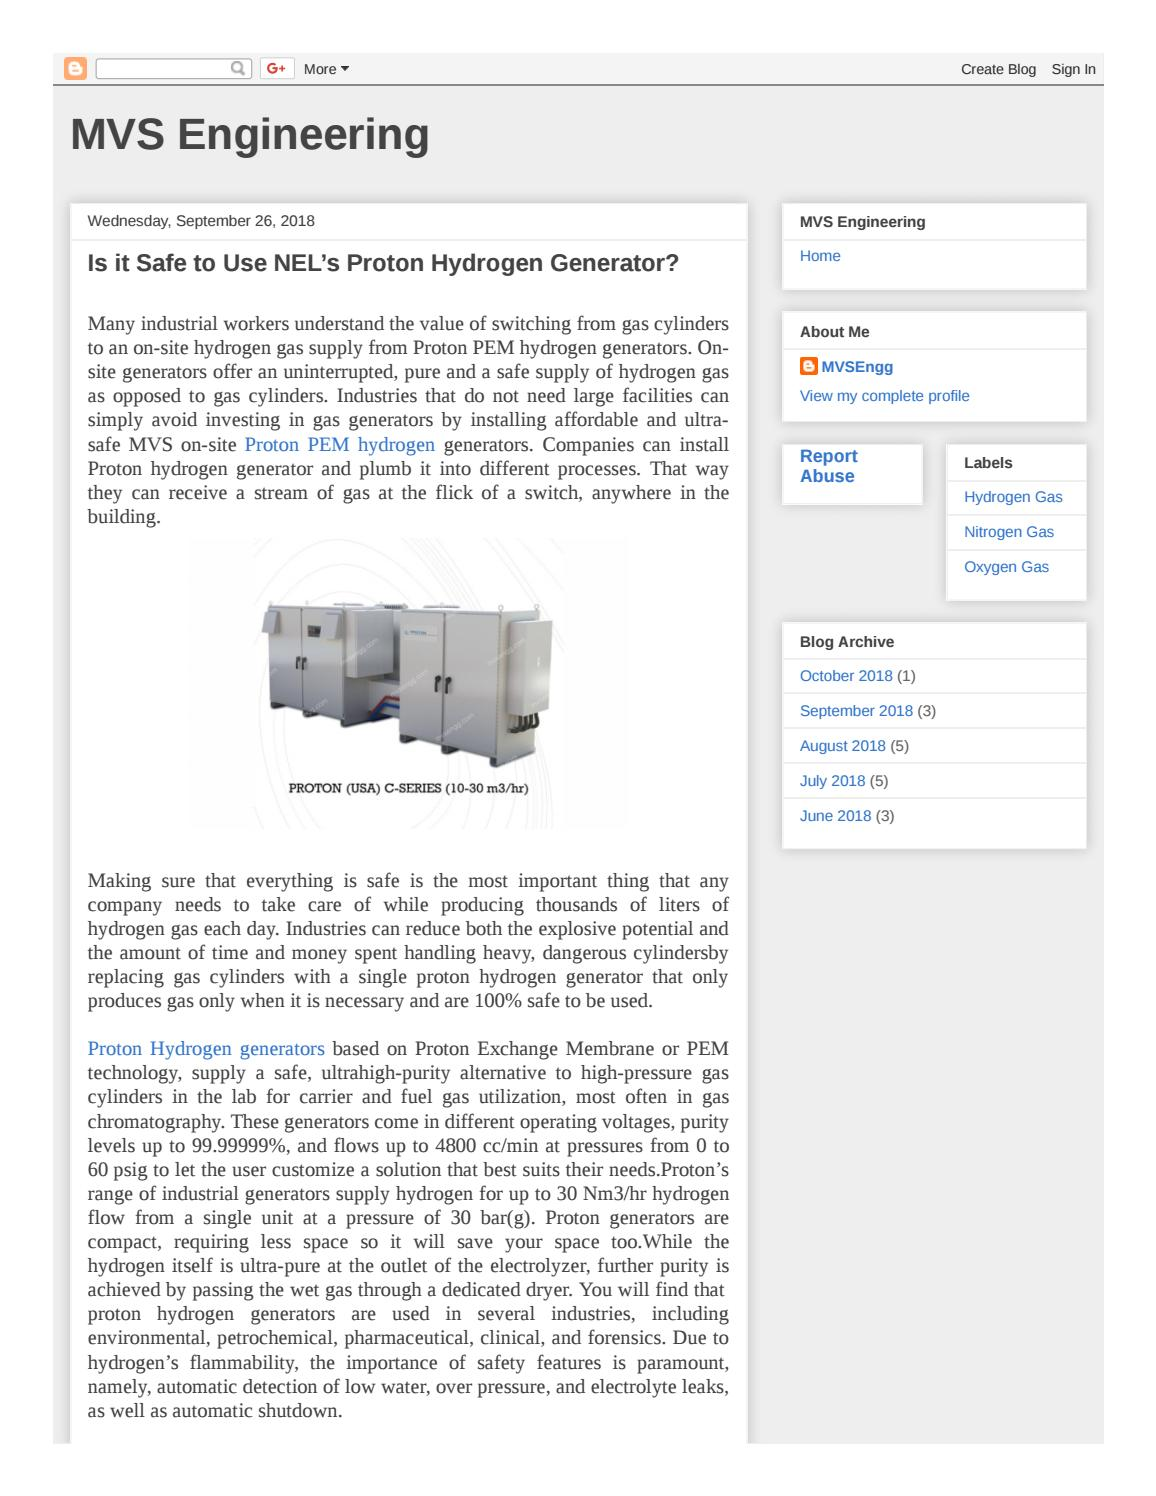 Is It Safe To Use Nel S Proton Hydrogen Generator By Mvs Engg Issuu